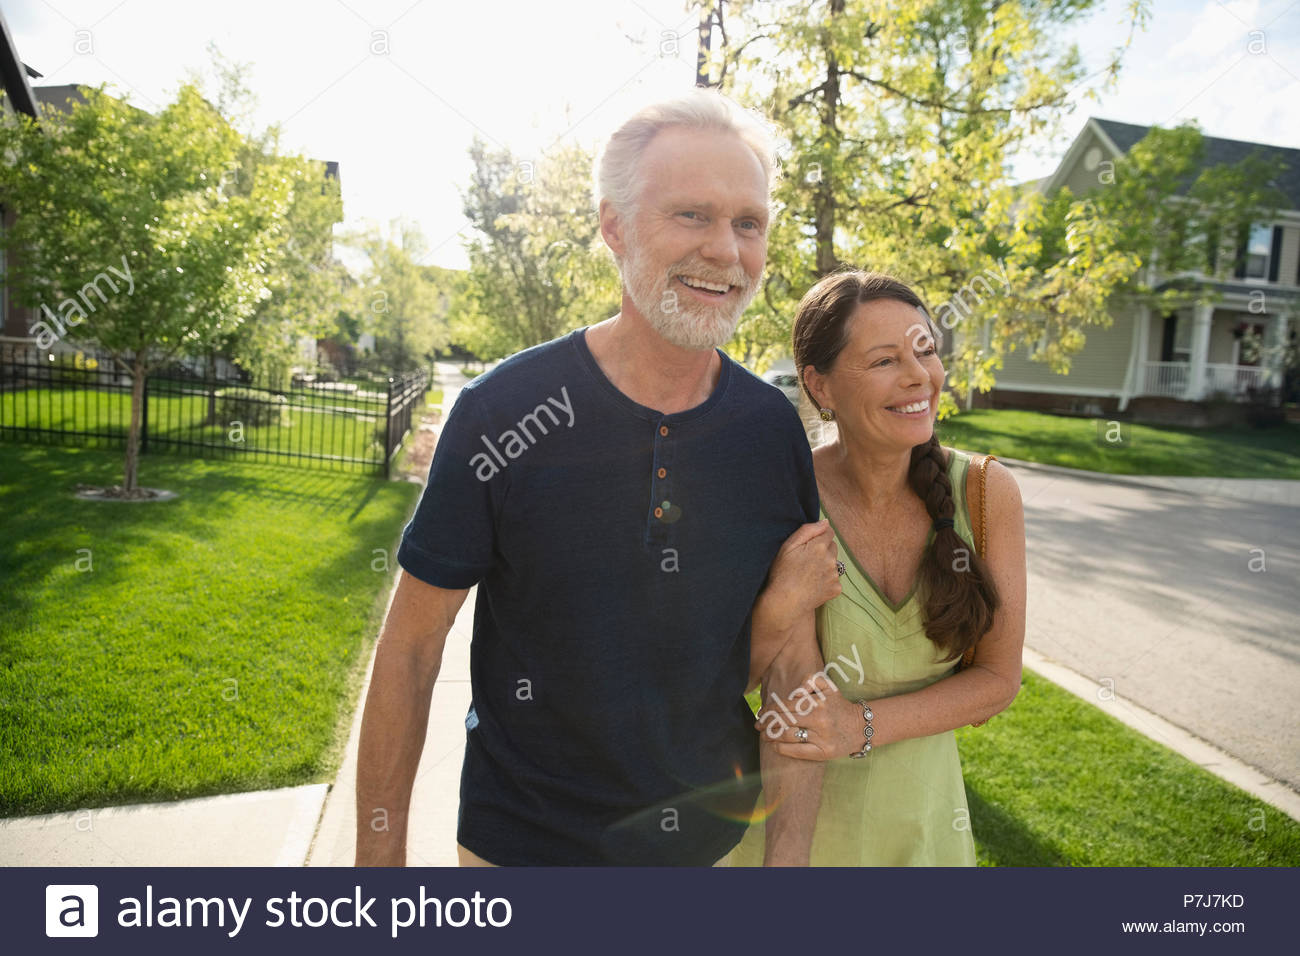 Smiling, affectionate senior couple walking arm in arm on sunny neighborhood sidewalk - Stock Image